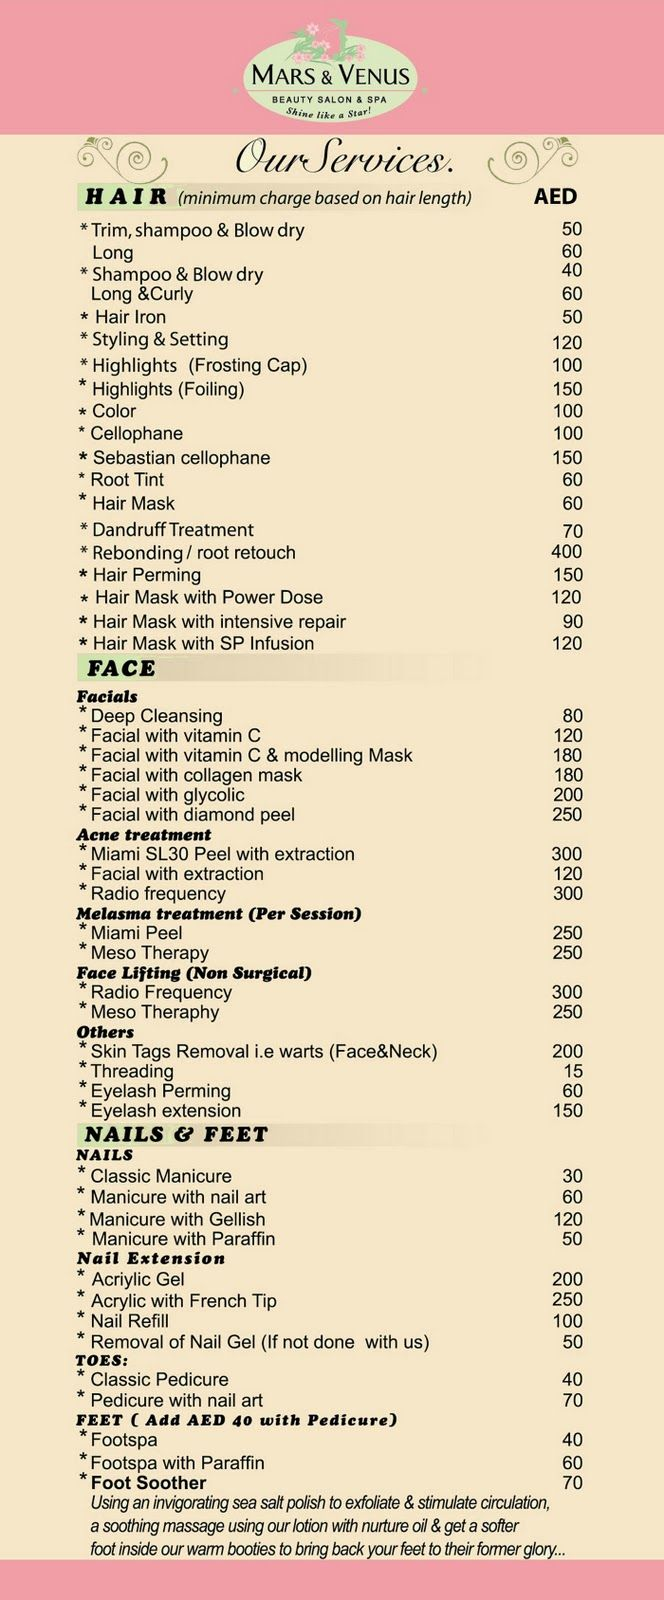 FILIPINO IN UAE: Mars Venus Beauty Salon / Spa Brochure